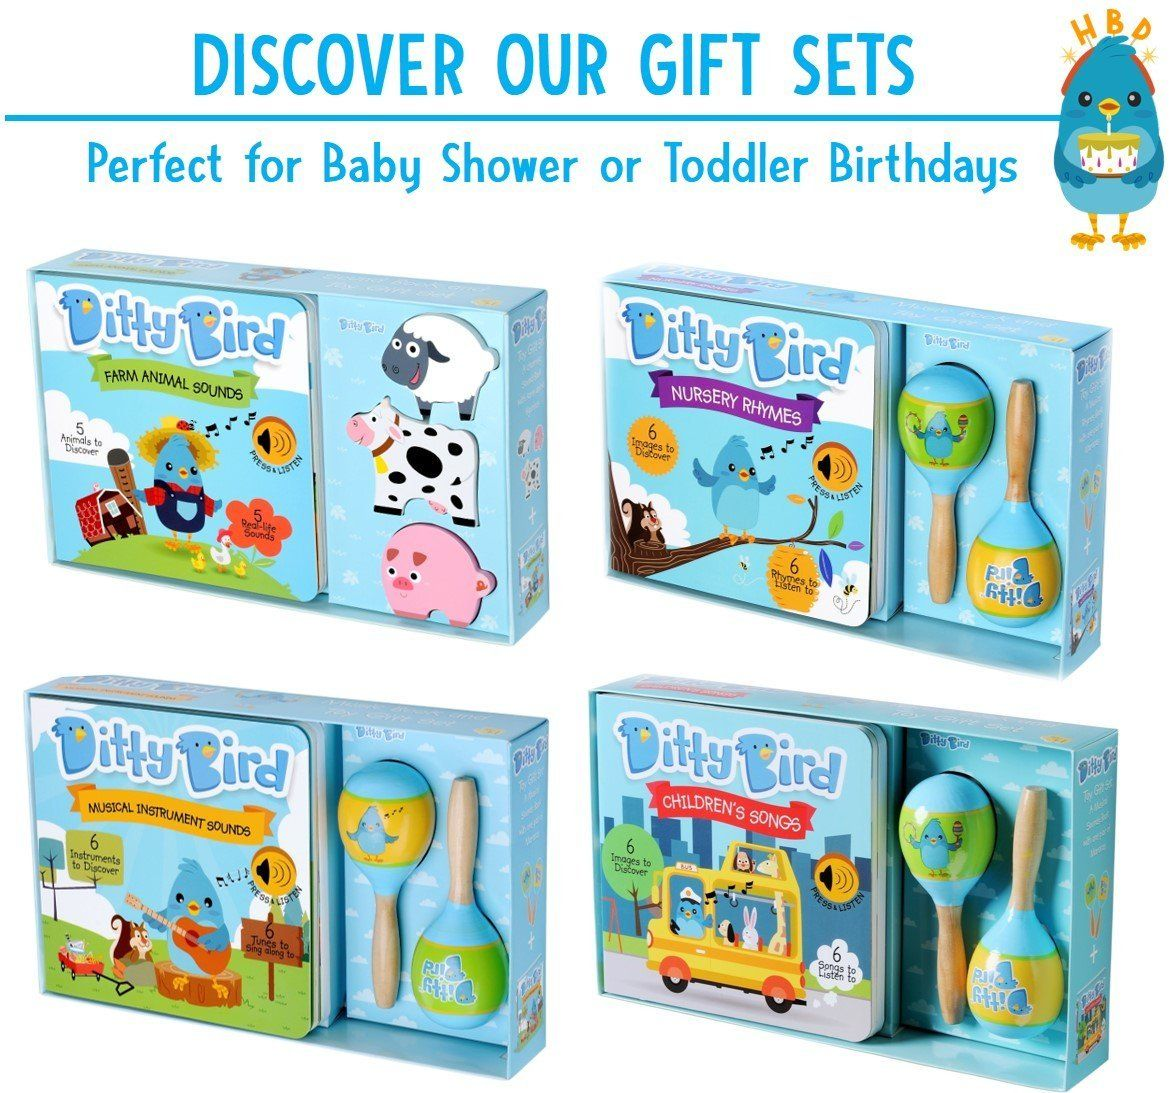 Ditty Bird Our Best Interactive Musical Nursery Rhymes Book For Babies